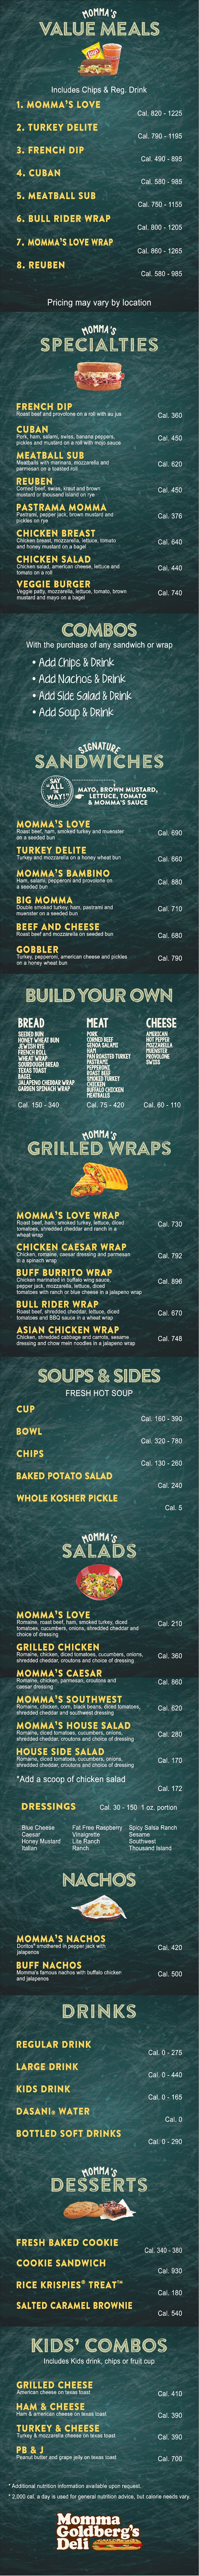 Momma G's Regular Menu